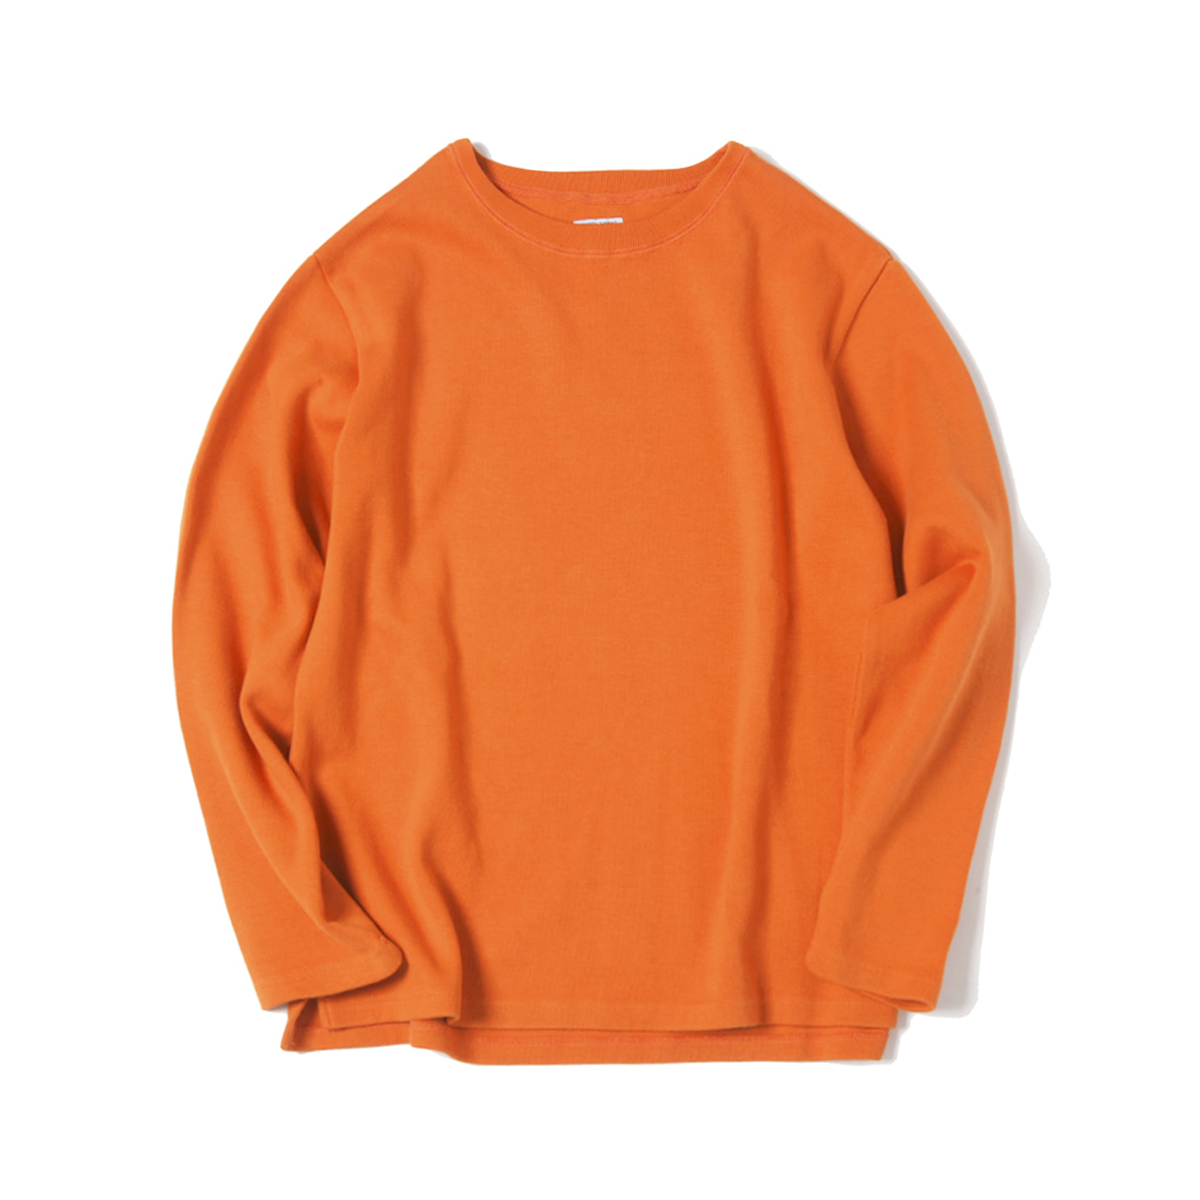 [ELSEWEAR] DON'T WORRY L/S TEE 'ORANGE'